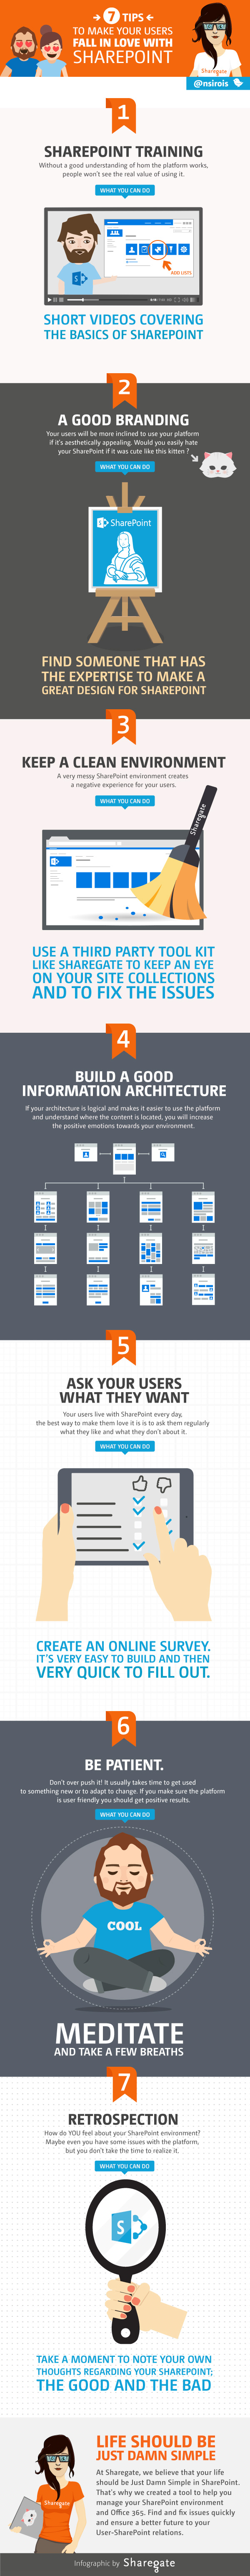 7 ways to make your users addicted to SharePoint [Infographic]